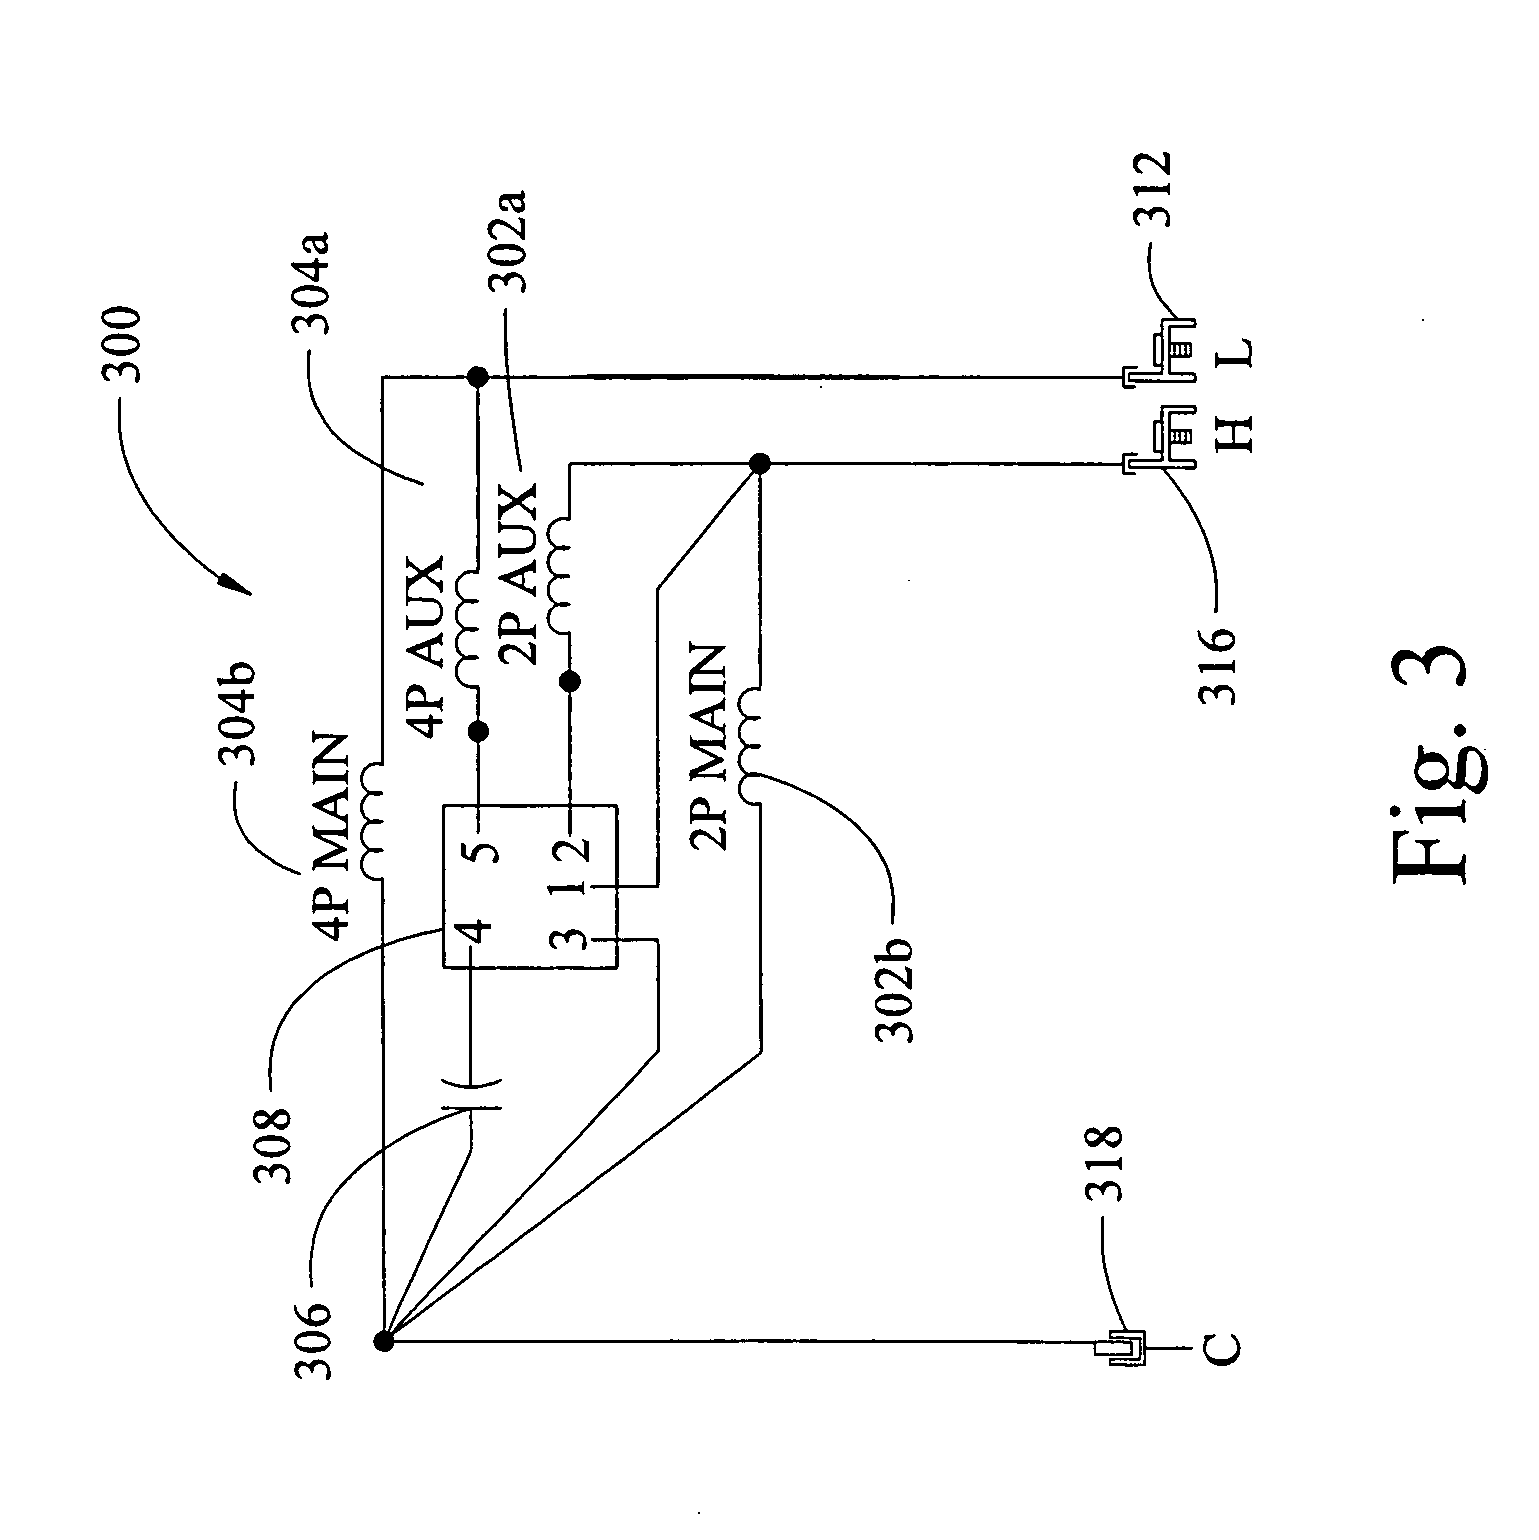 permanent split capacitor motor wiring diagram vw type 1 patent us20070229020 multi speed